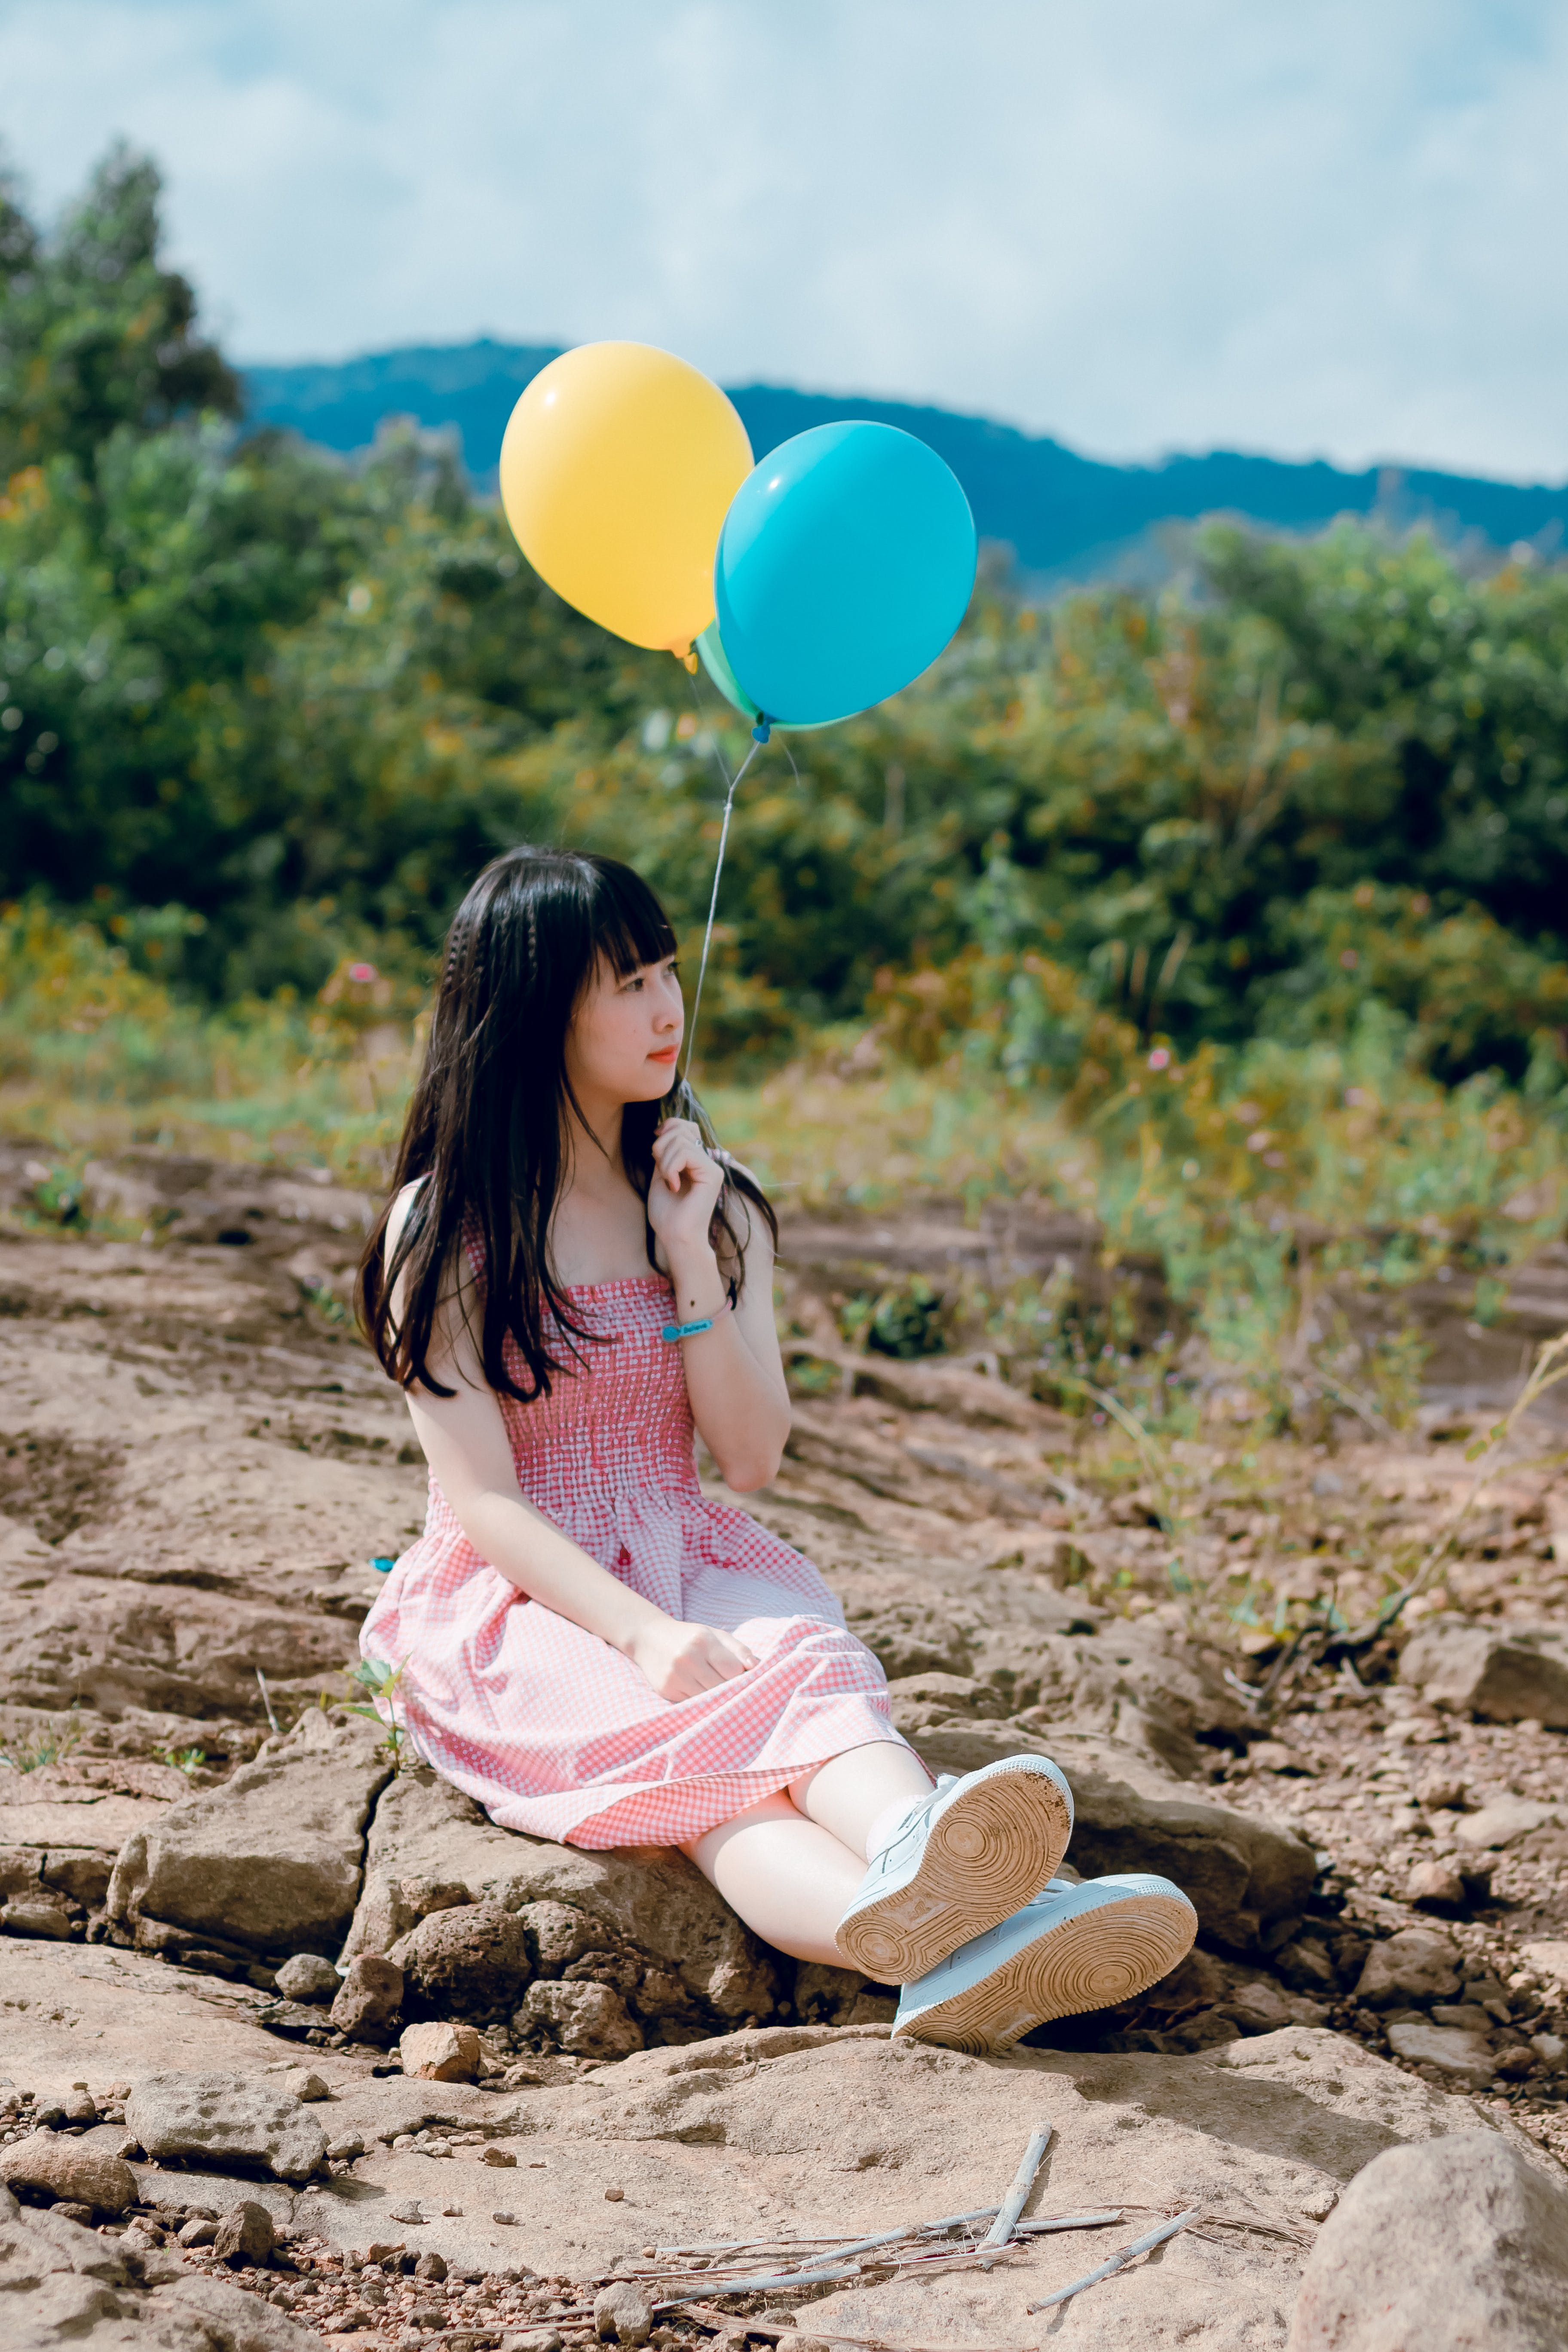 Woman Wearing Pink Dress Sitting on Ground Holding Two Balloons